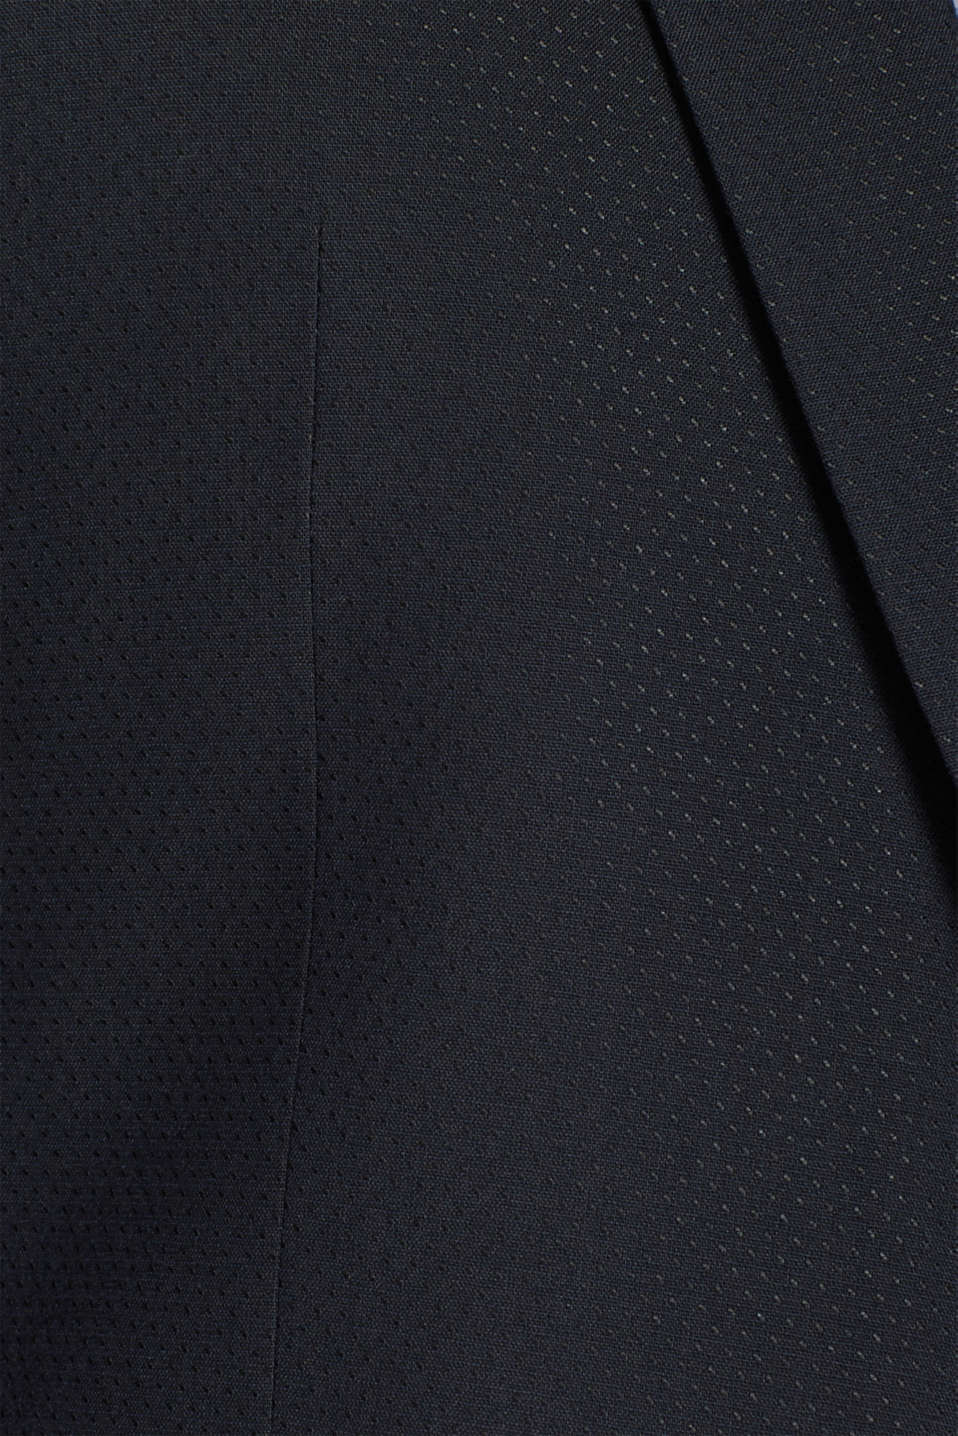 Blazers suit, BLACK, detail image number 4